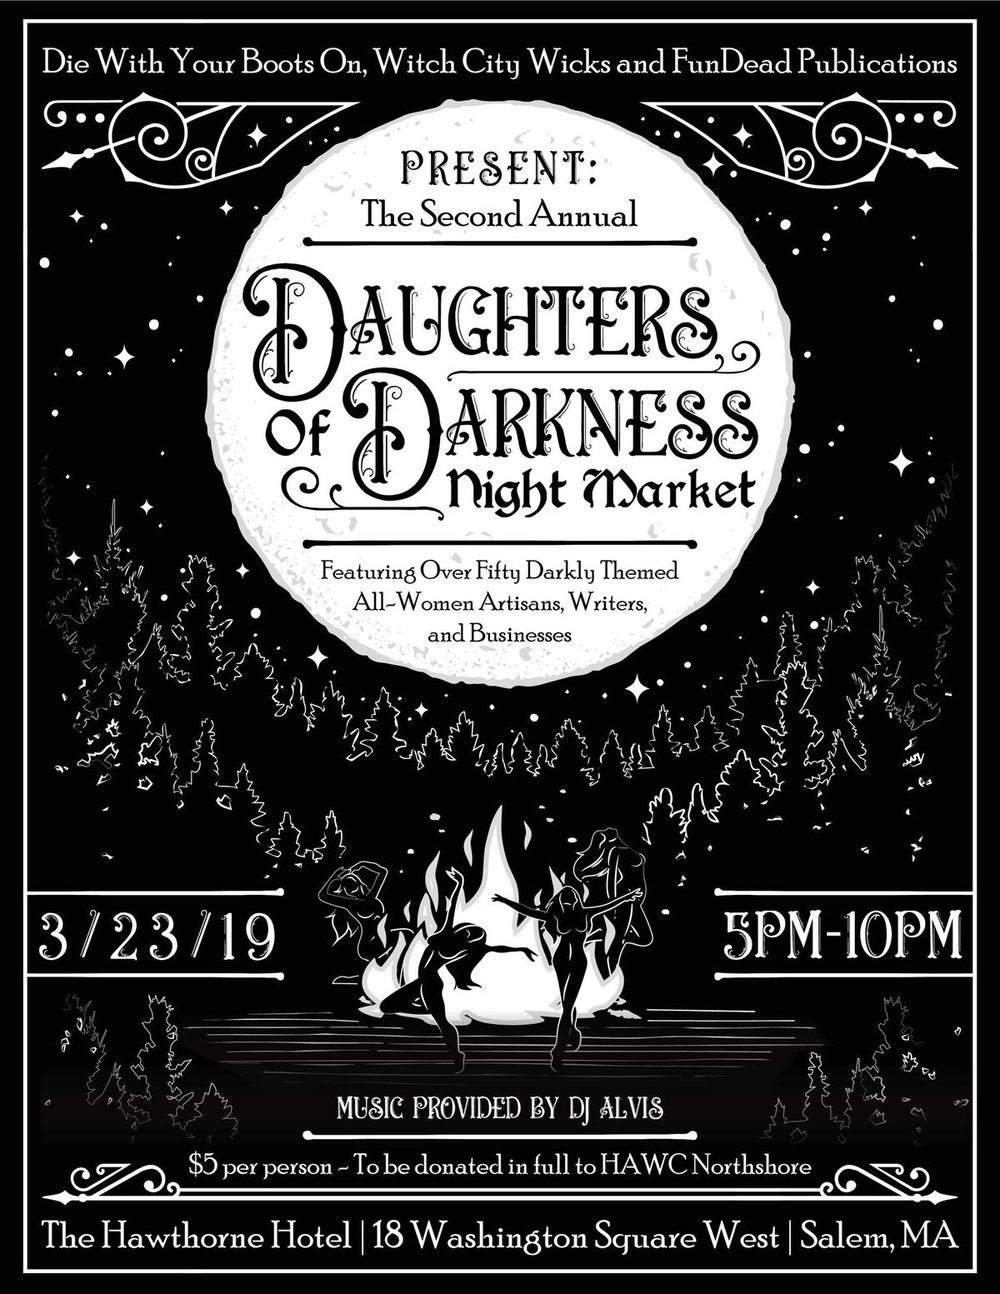 Daughters of Darkness Market - Super excited, I will be at the Daughters of Darkness market at the glorious Hawthorne Hotel in Salem Ma. It's on March 23, and goes from 5-10pm. Its a curated craft market of female-led businesses with a gothy vibe. I've been carving up so many awesome new gravestone prints to sell, can't wait to see you there!